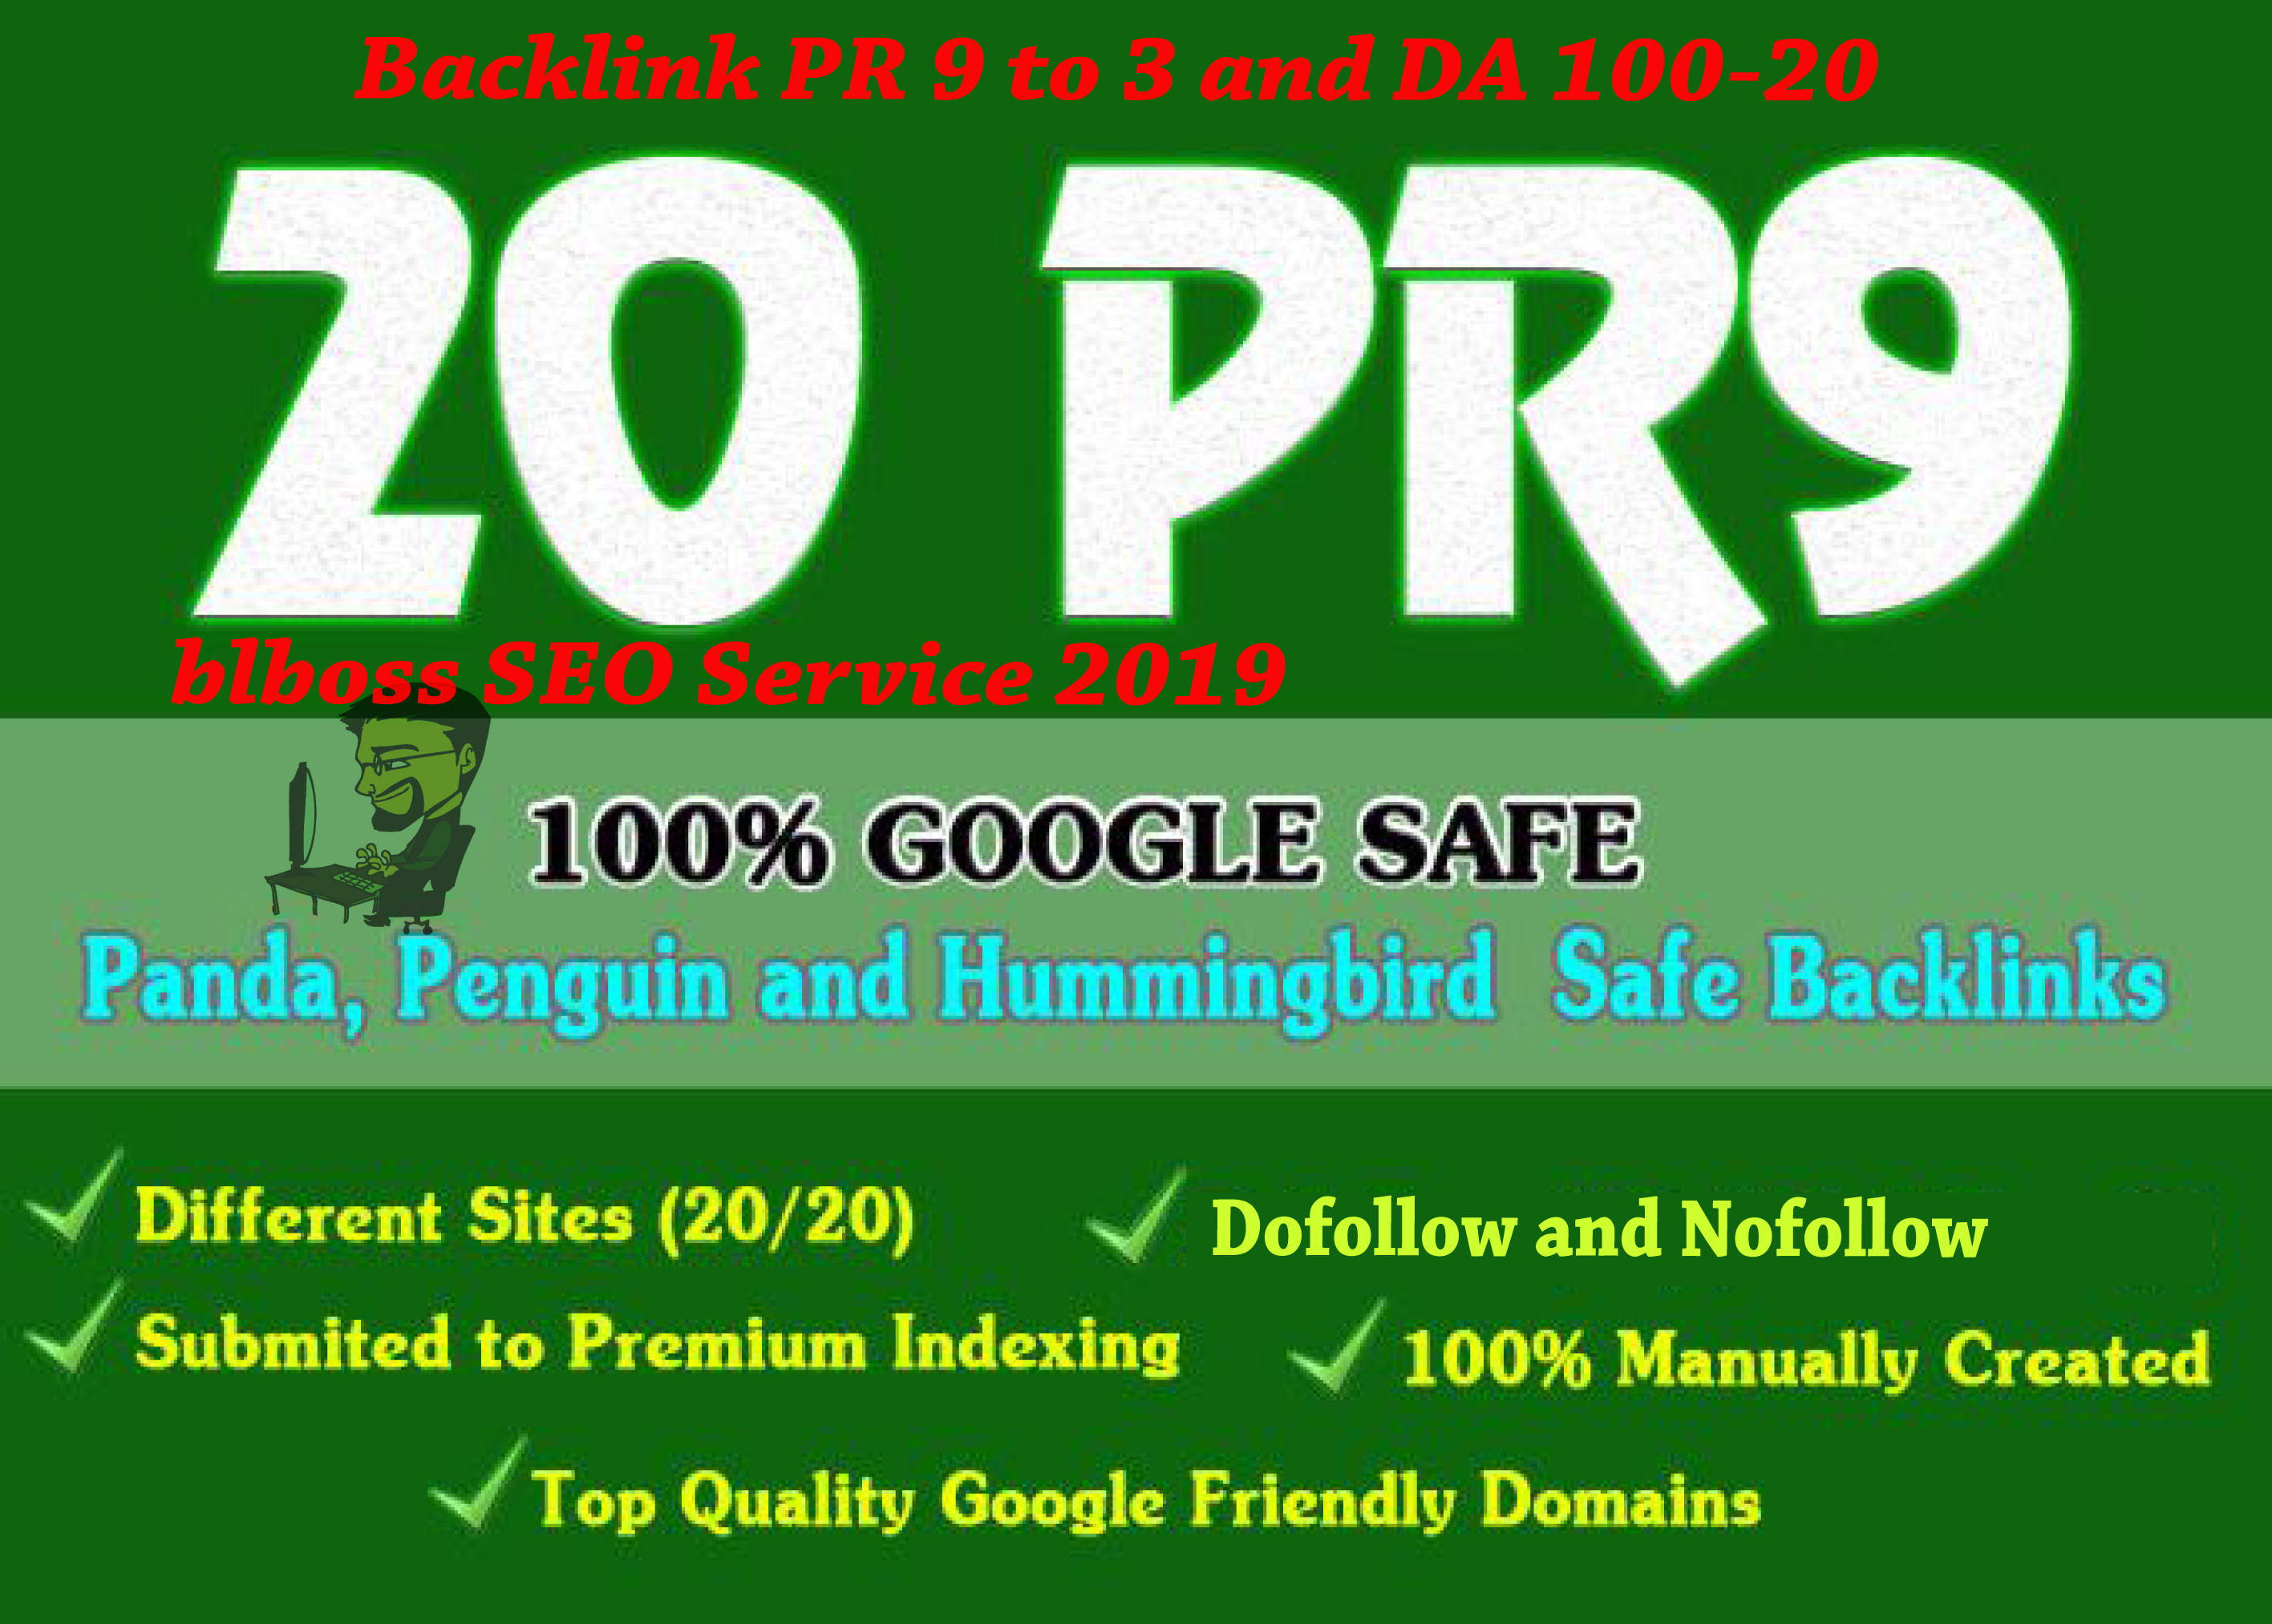 Build 20 Unique Domains Manual Backlinks DA 100-20